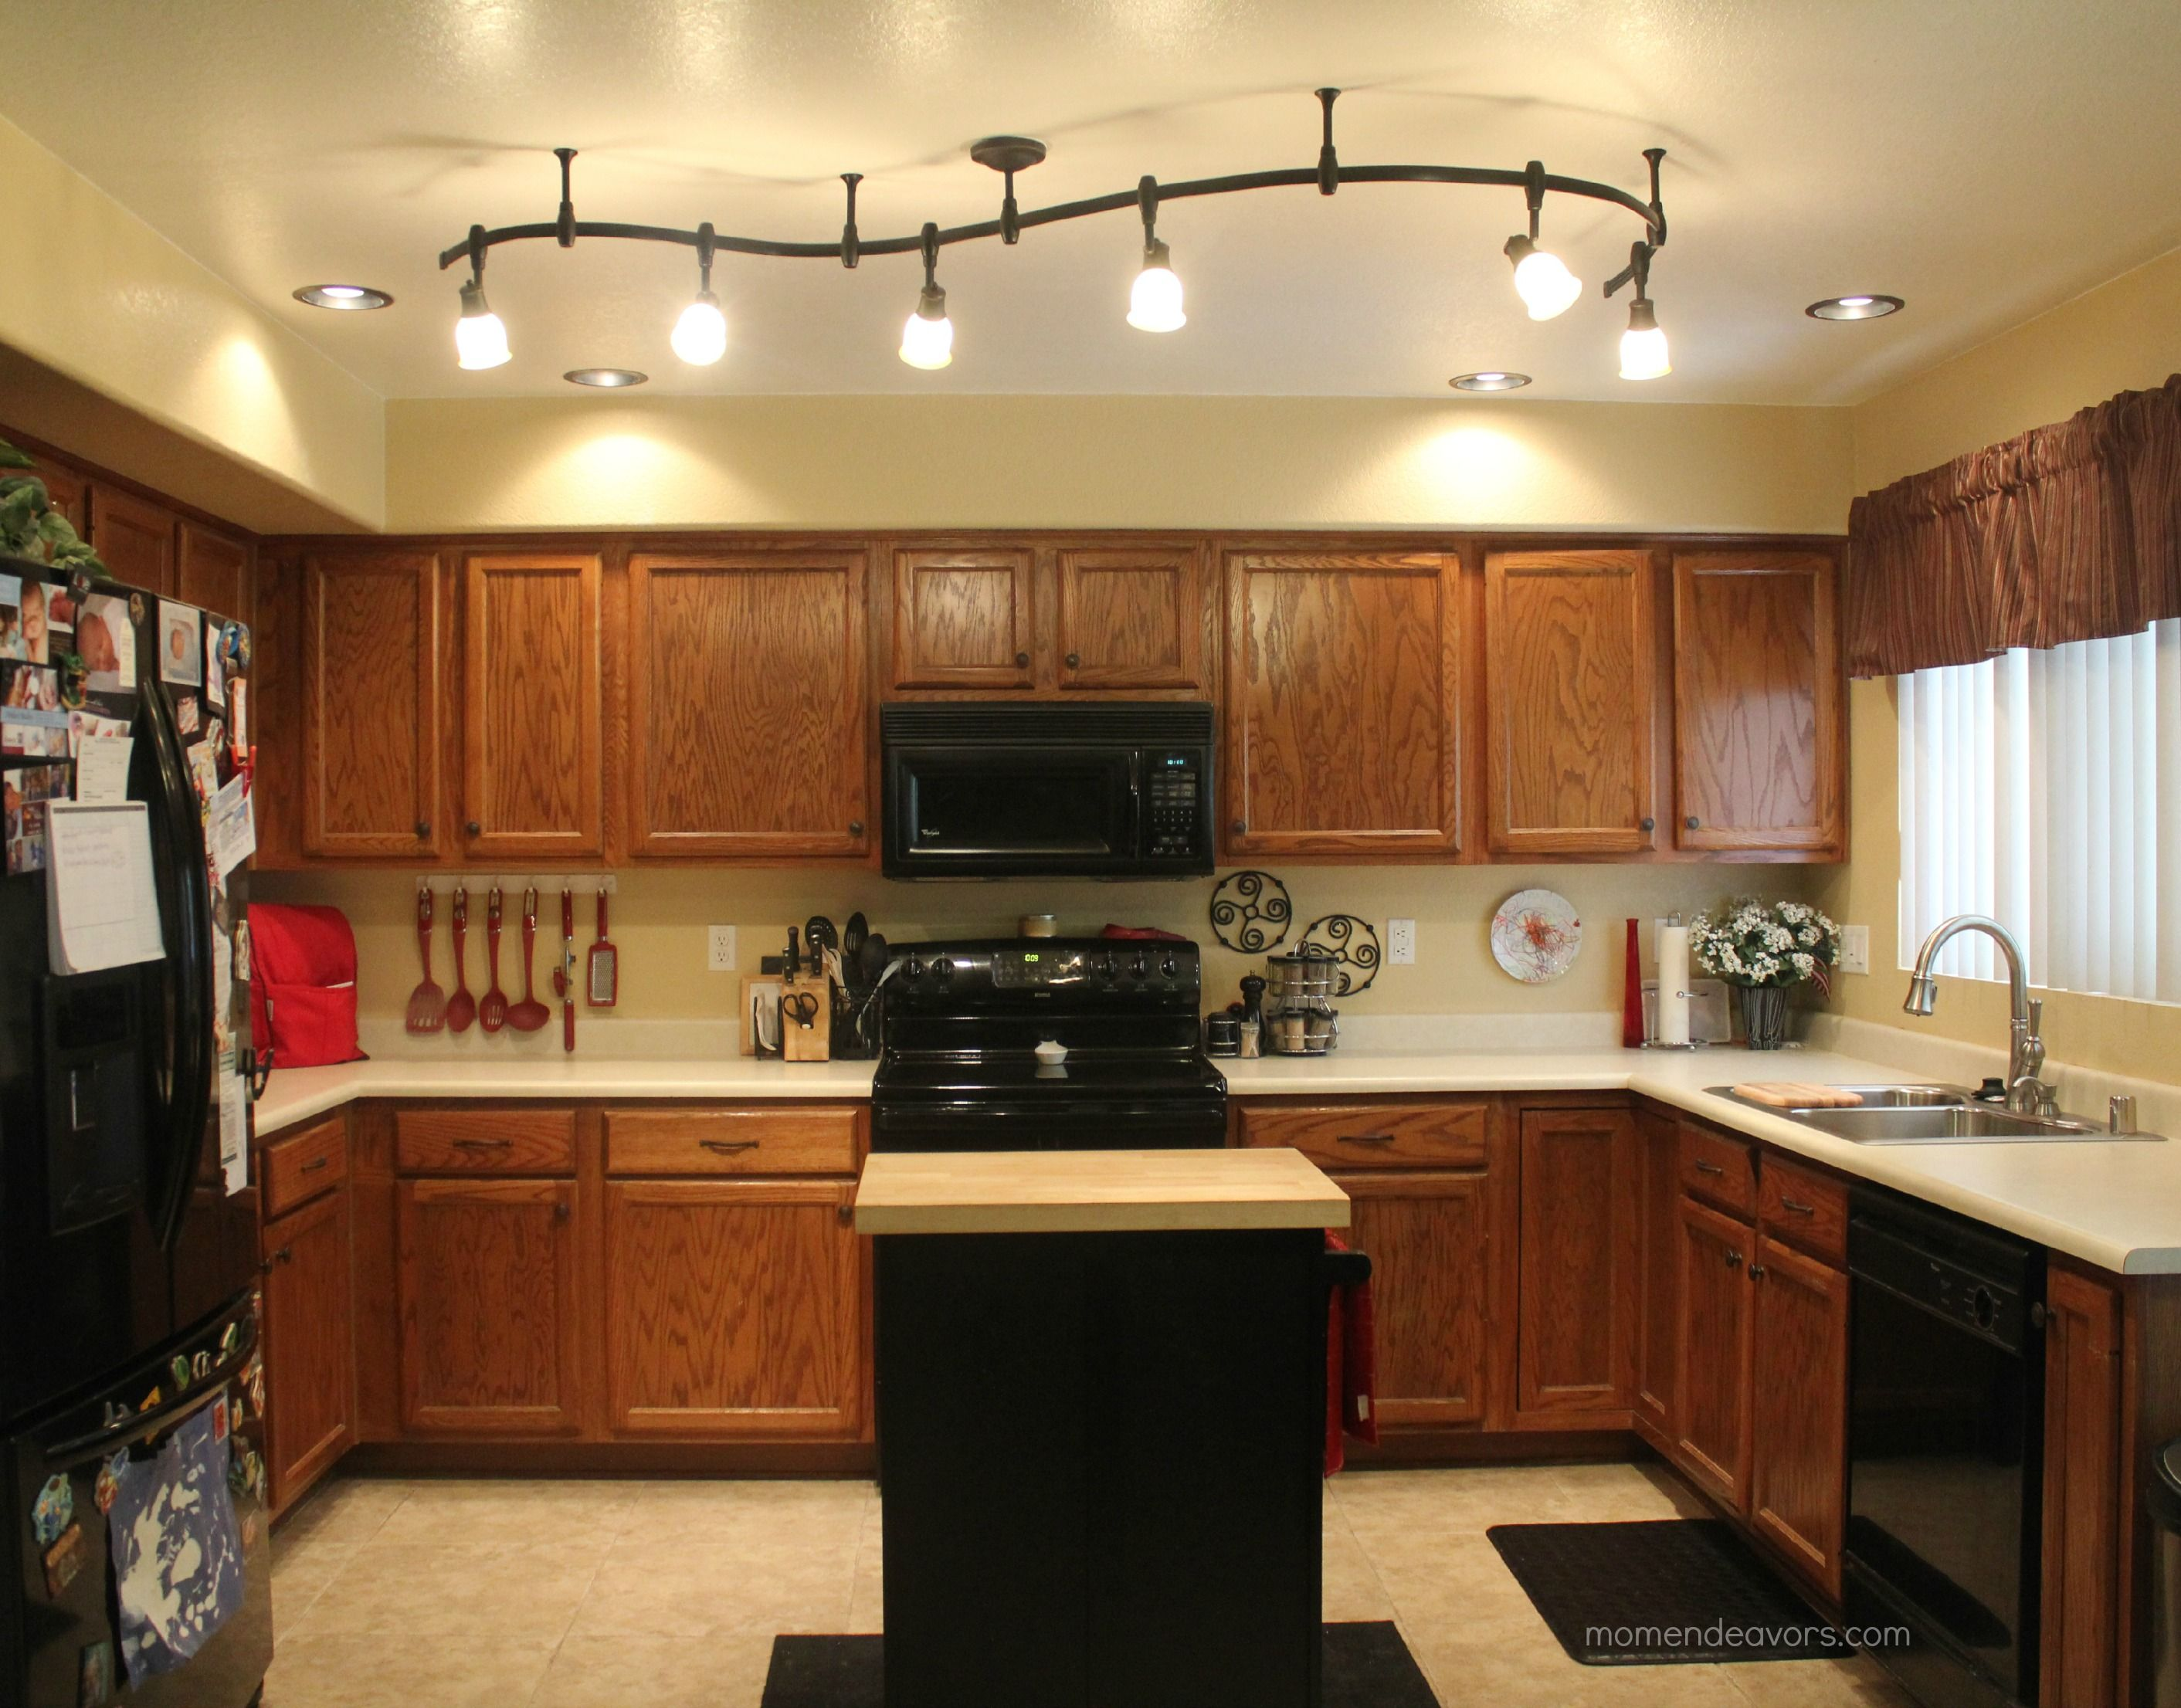 For Kitchen Ceilings 11 Stunning Photos Of Kitchen Track Lighting Diy Kitchen Remodel